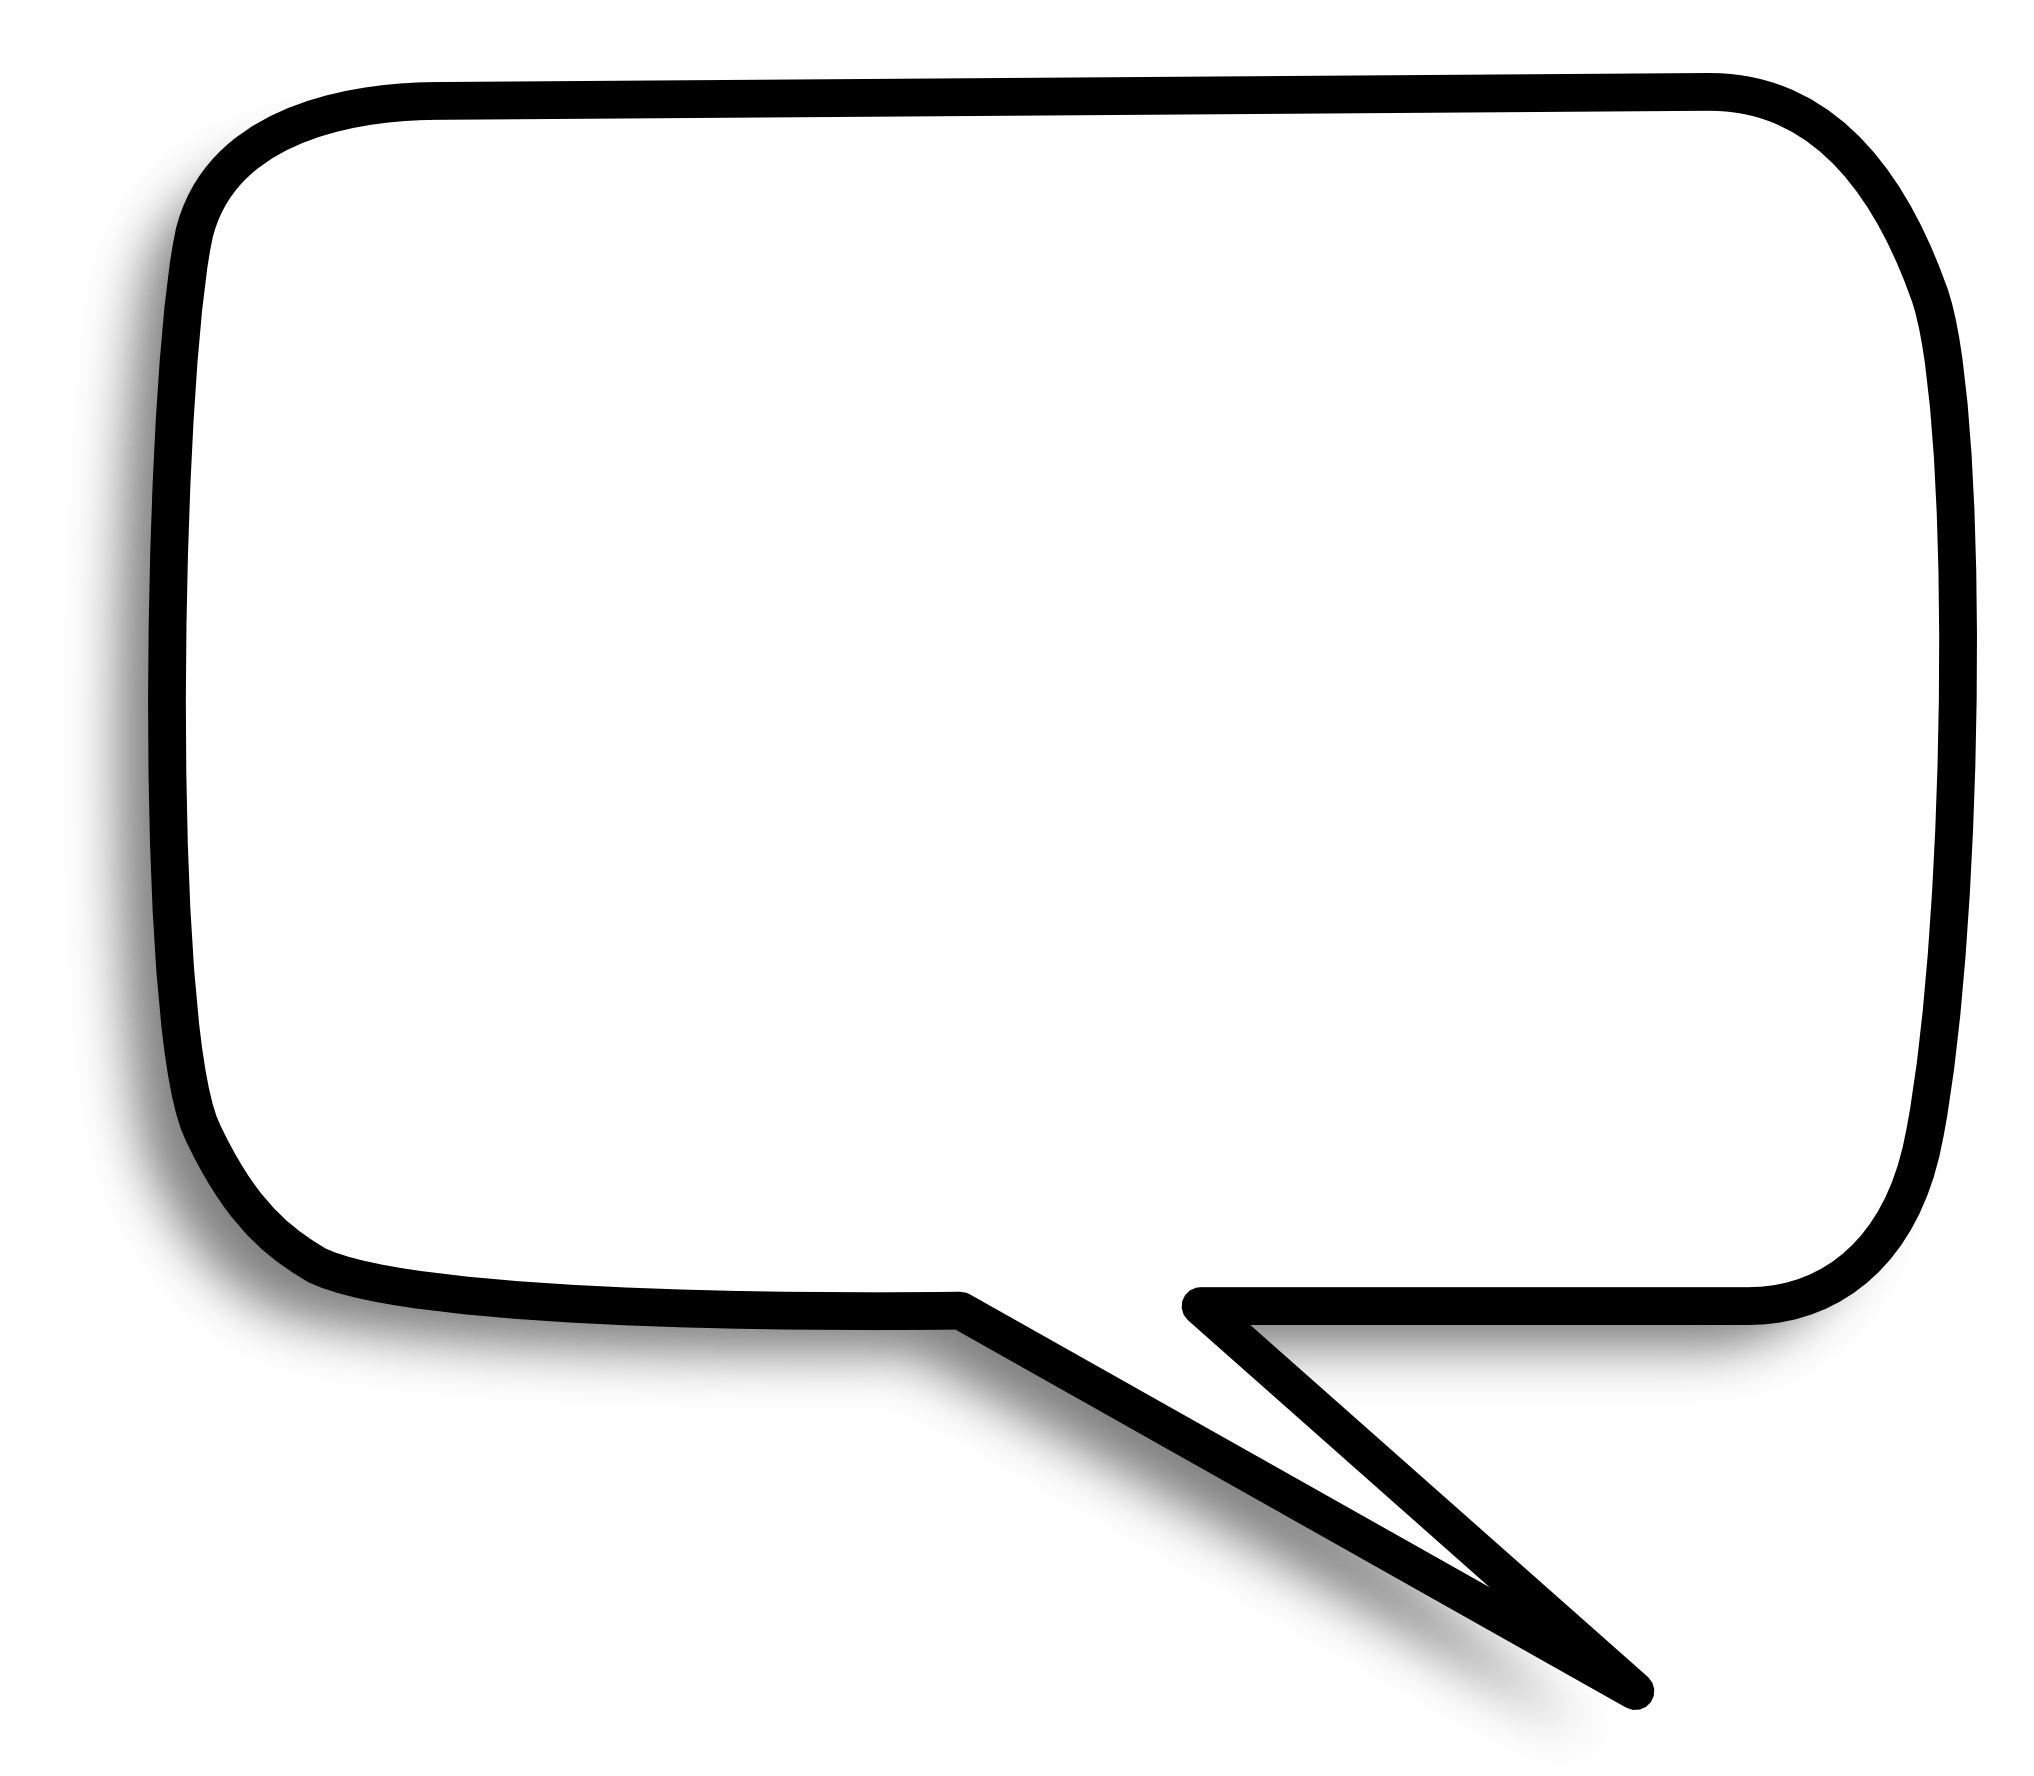 Square Speech Bubble PNG Image - PngPix